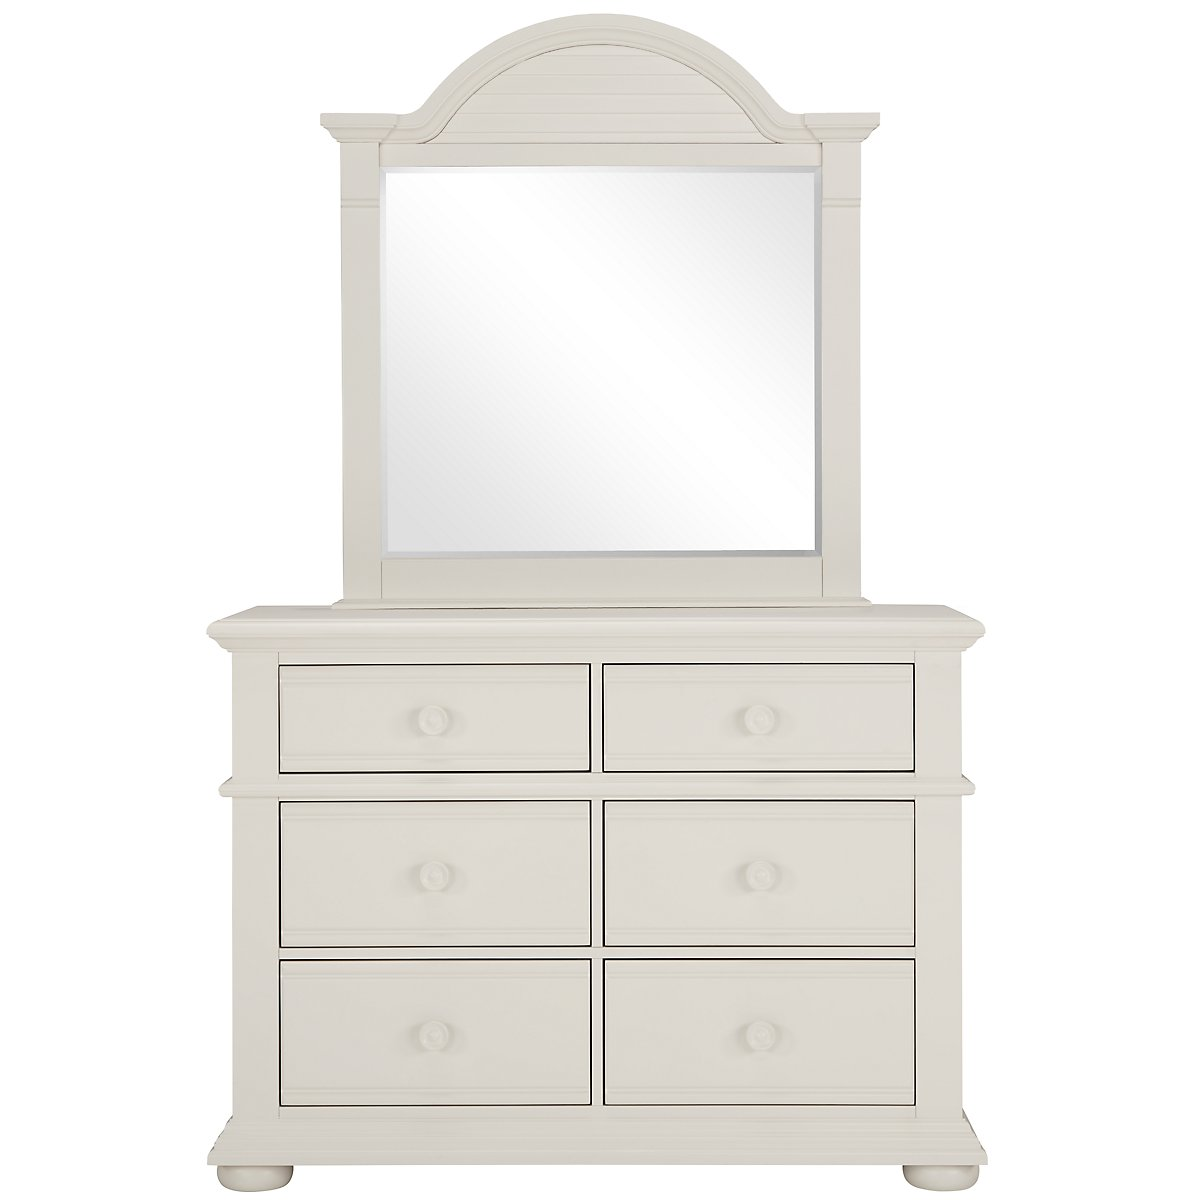 city furniture quinn white small dresser mirror. Black Bedroom Furniture Sets. Home Design Ideas